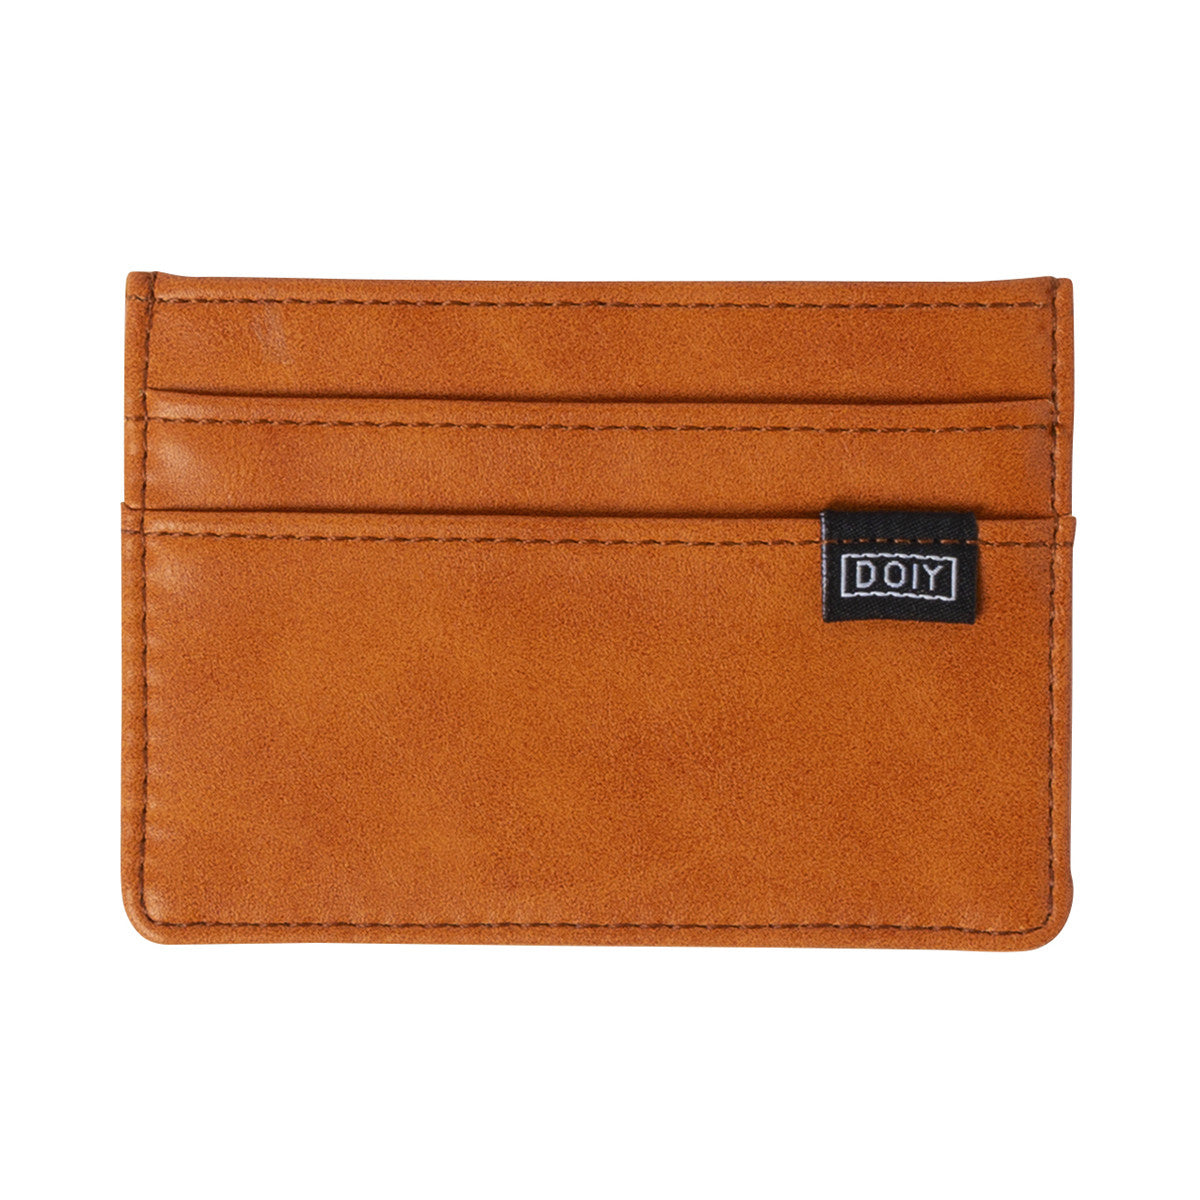 Honom Card Wallet Brown DOIY